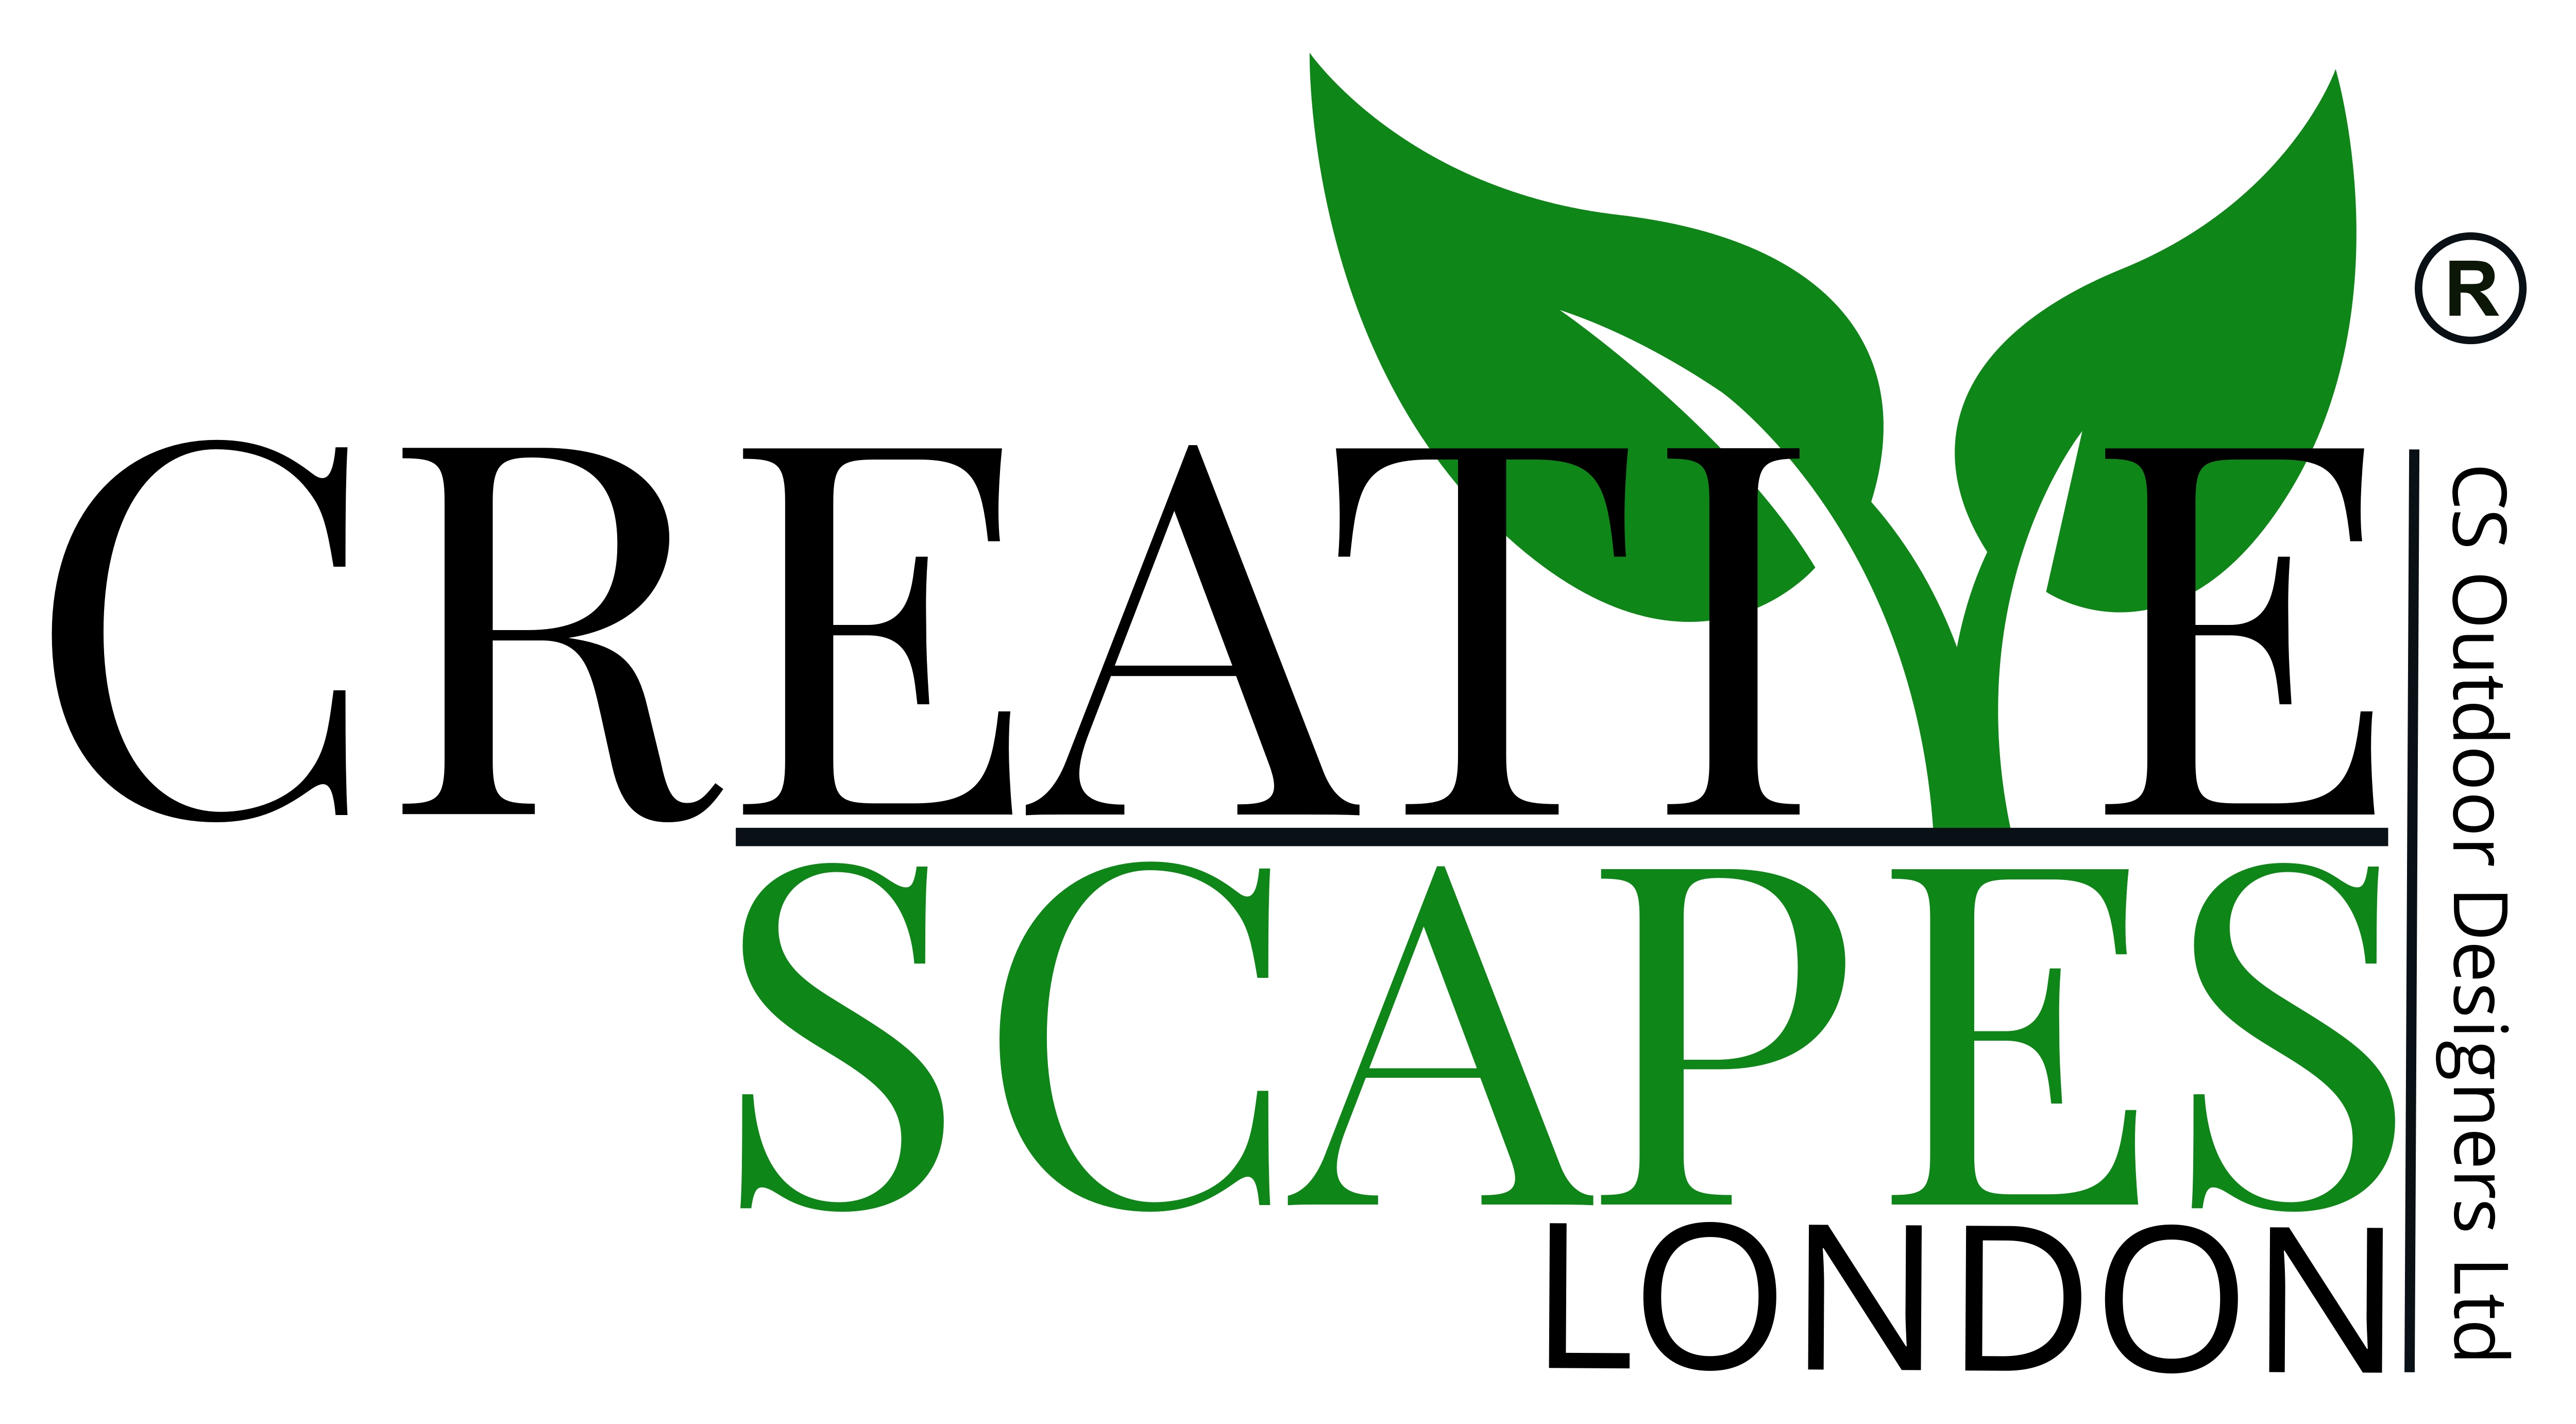 Creative Scapes Ltd